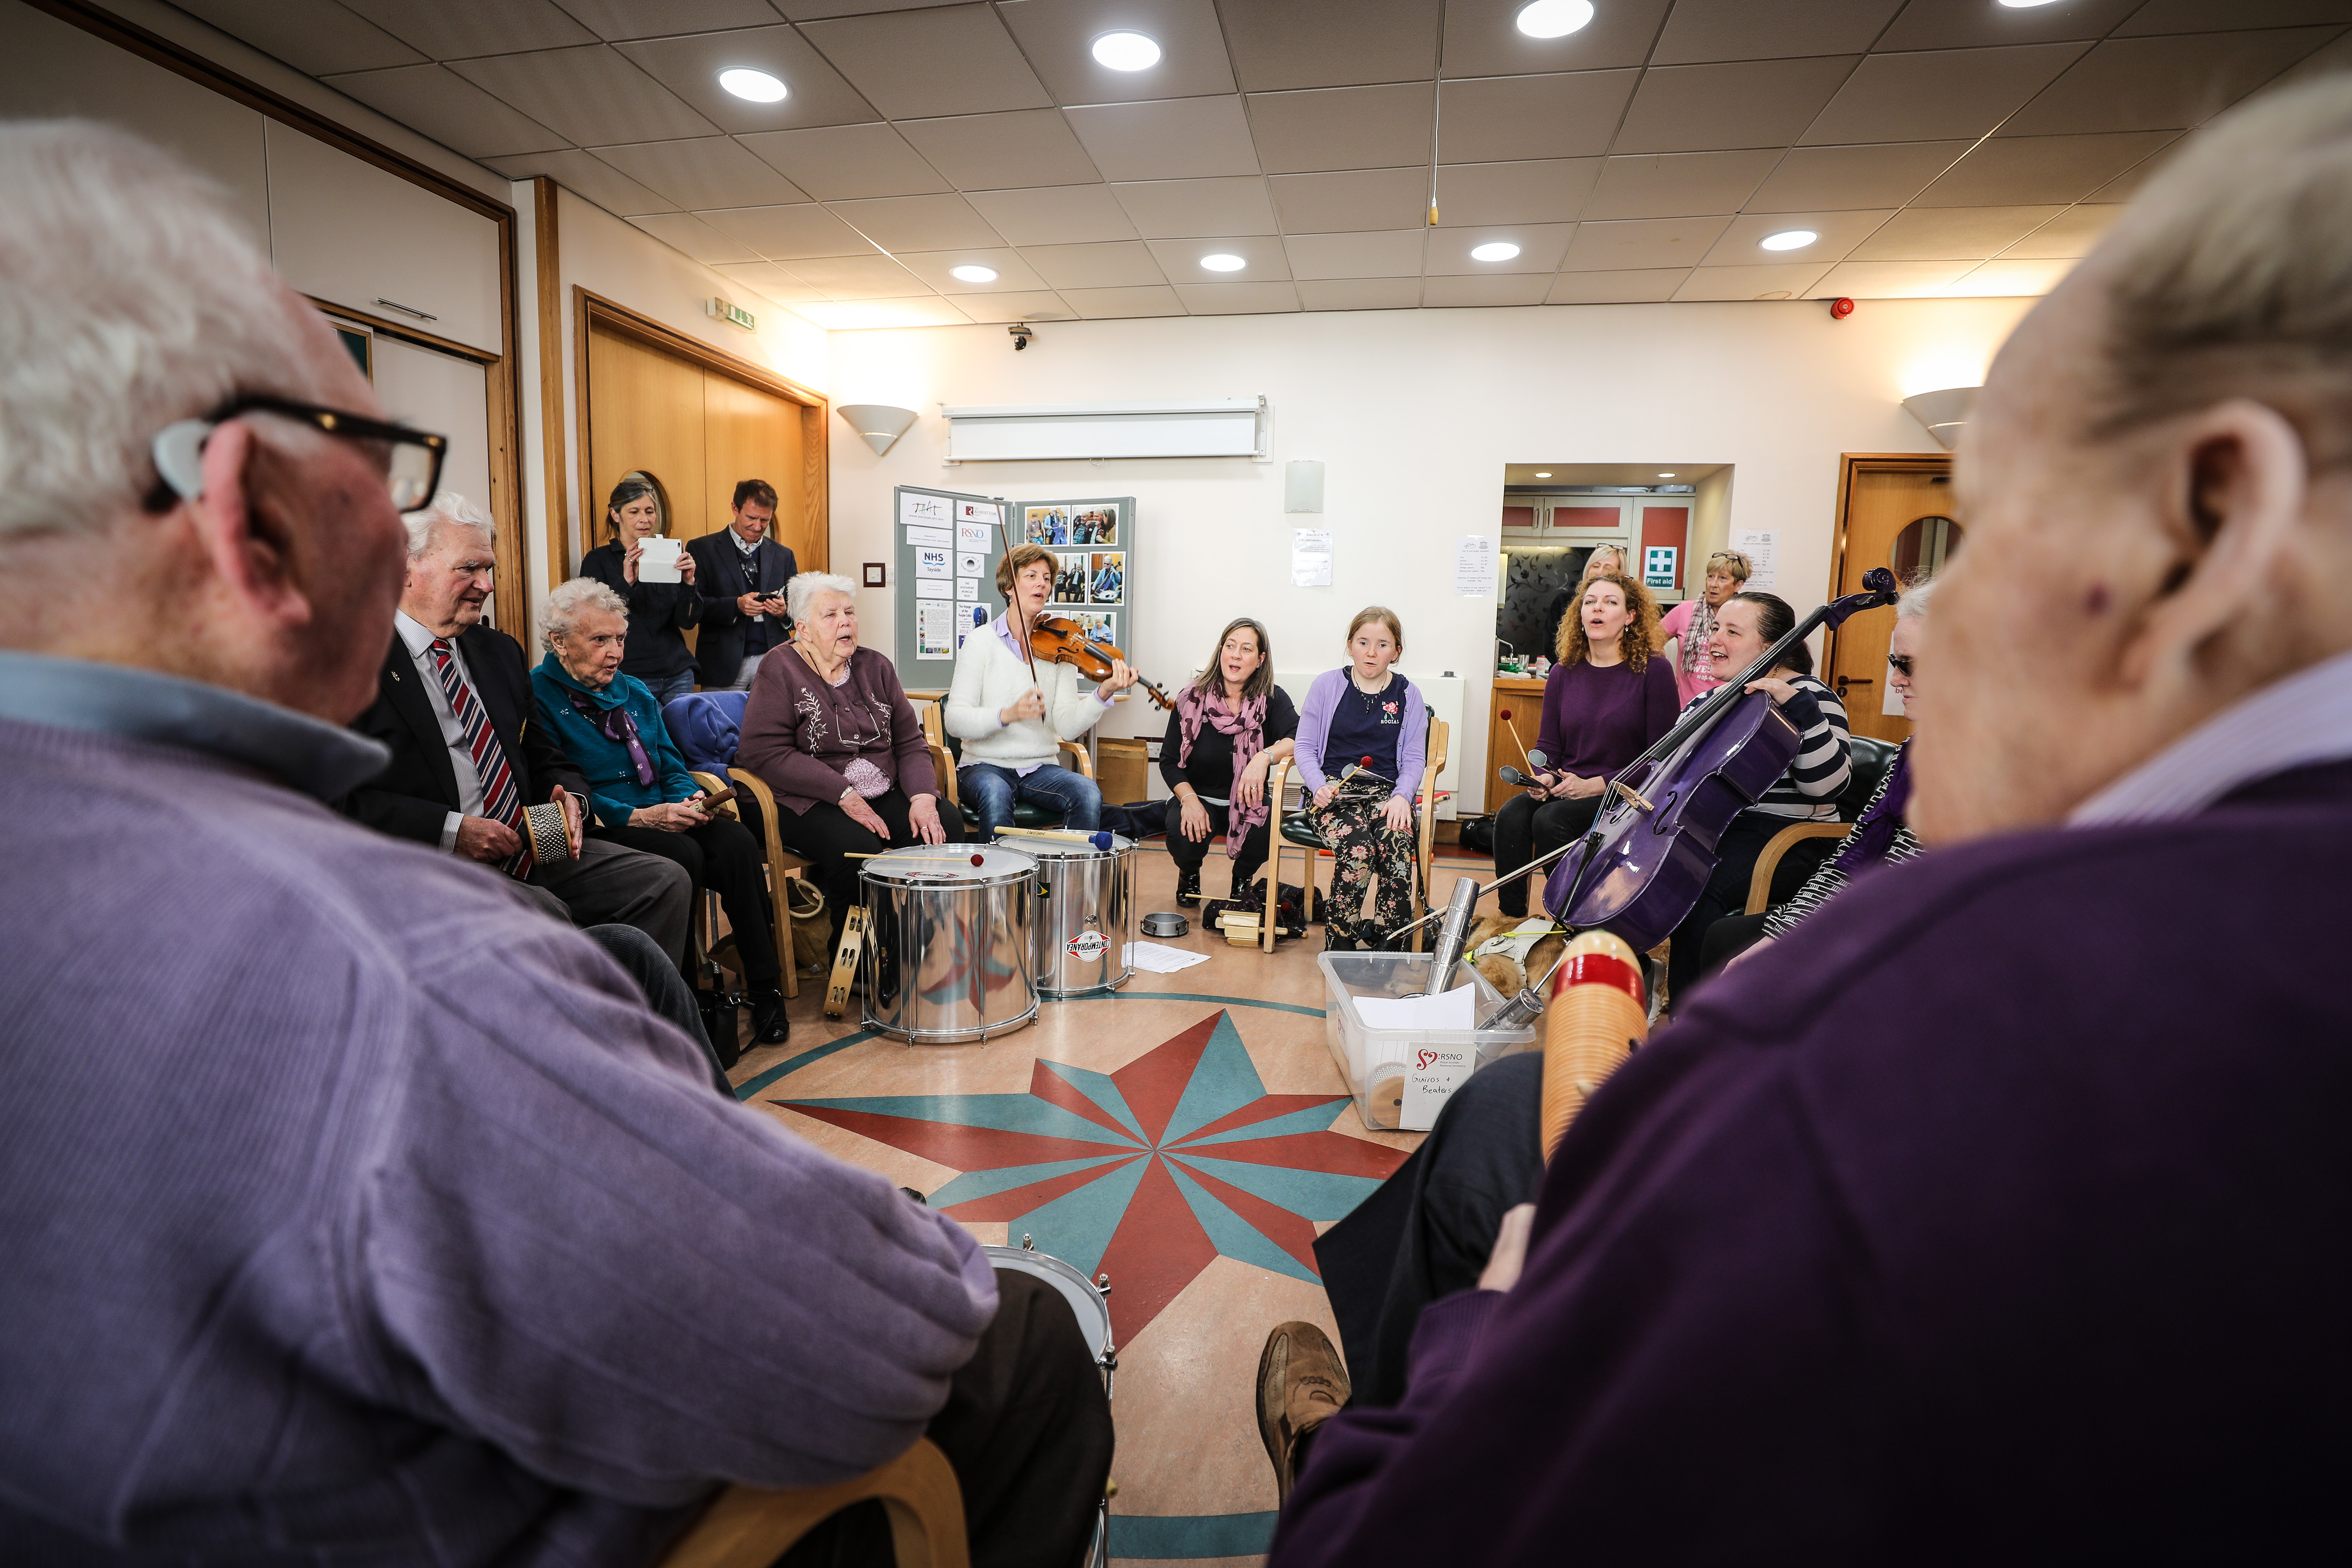 RSNO and participants performing at Dundee Blind and Partially Sighted Society (DBPSS) headquarters in Dundee.